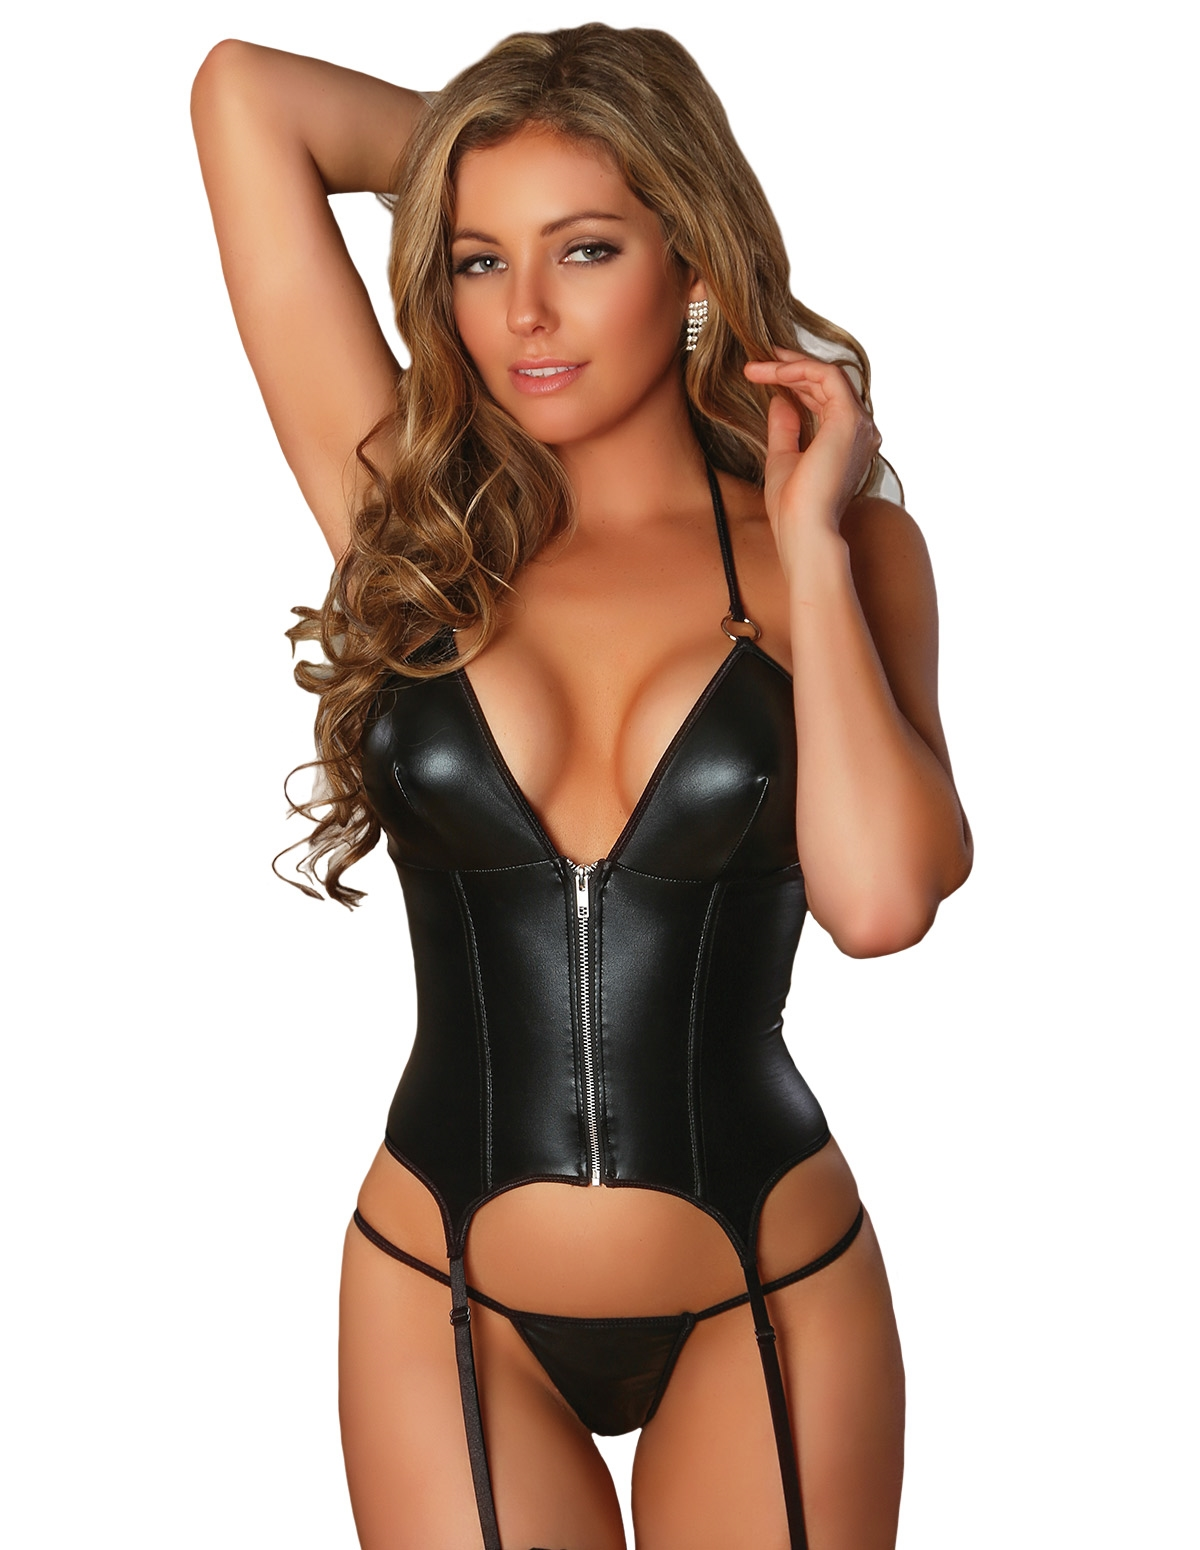 Zip-Up Merry Widow Corset & G-String